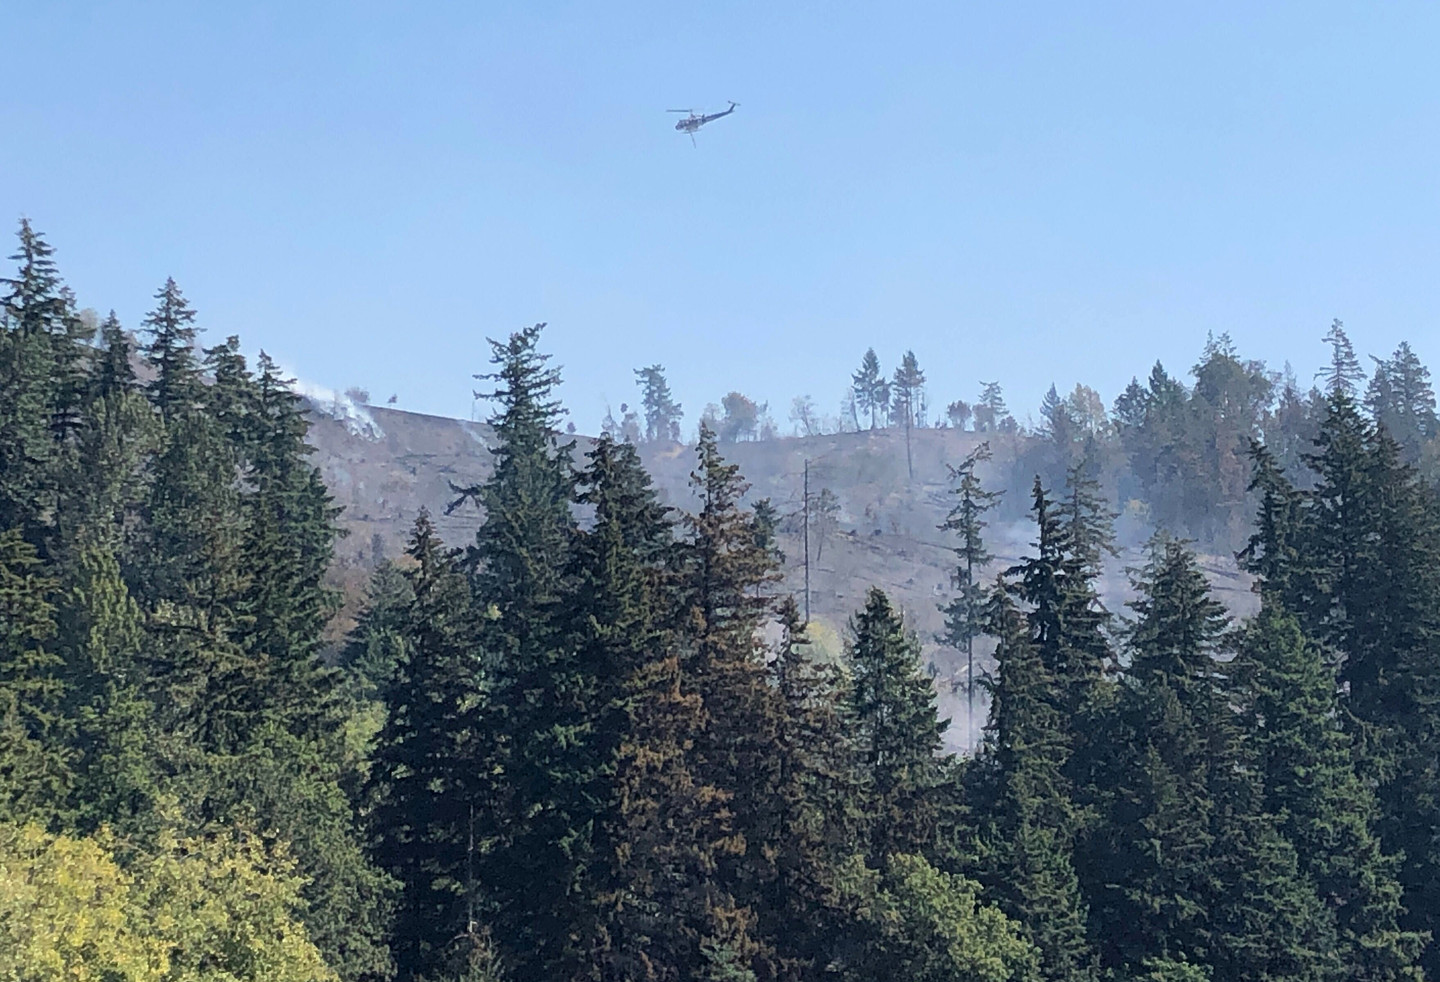 Forests in the U.S. West Are Out of Ecological Balance. Blame Wildfire Suppression